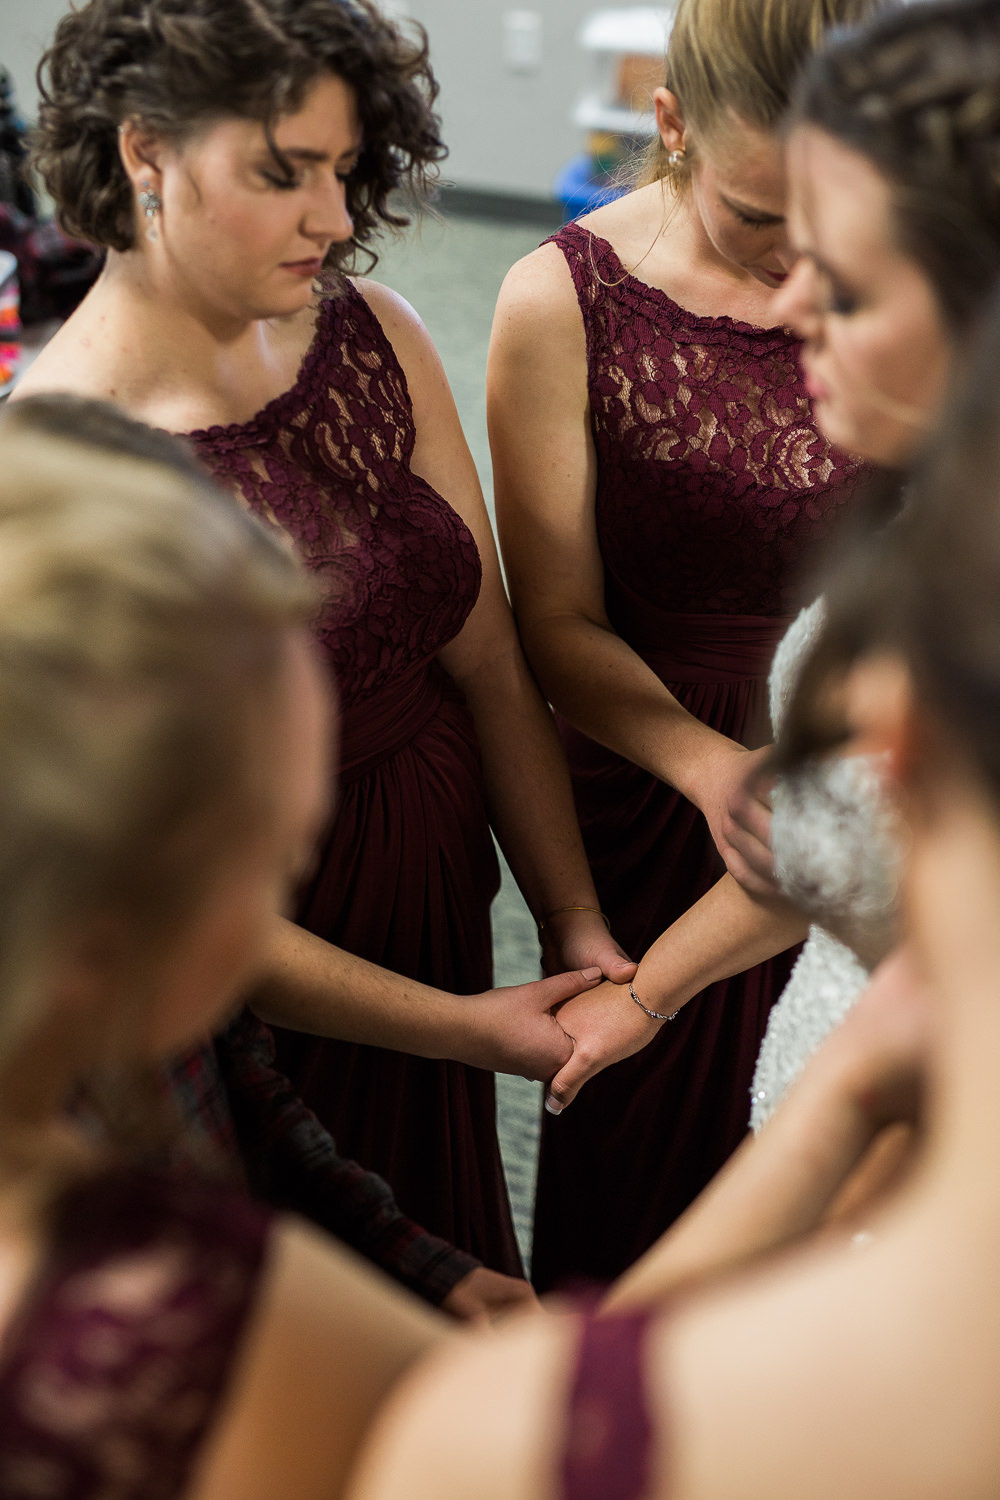 Bridesmaids and mothers pray for bride on wedding day